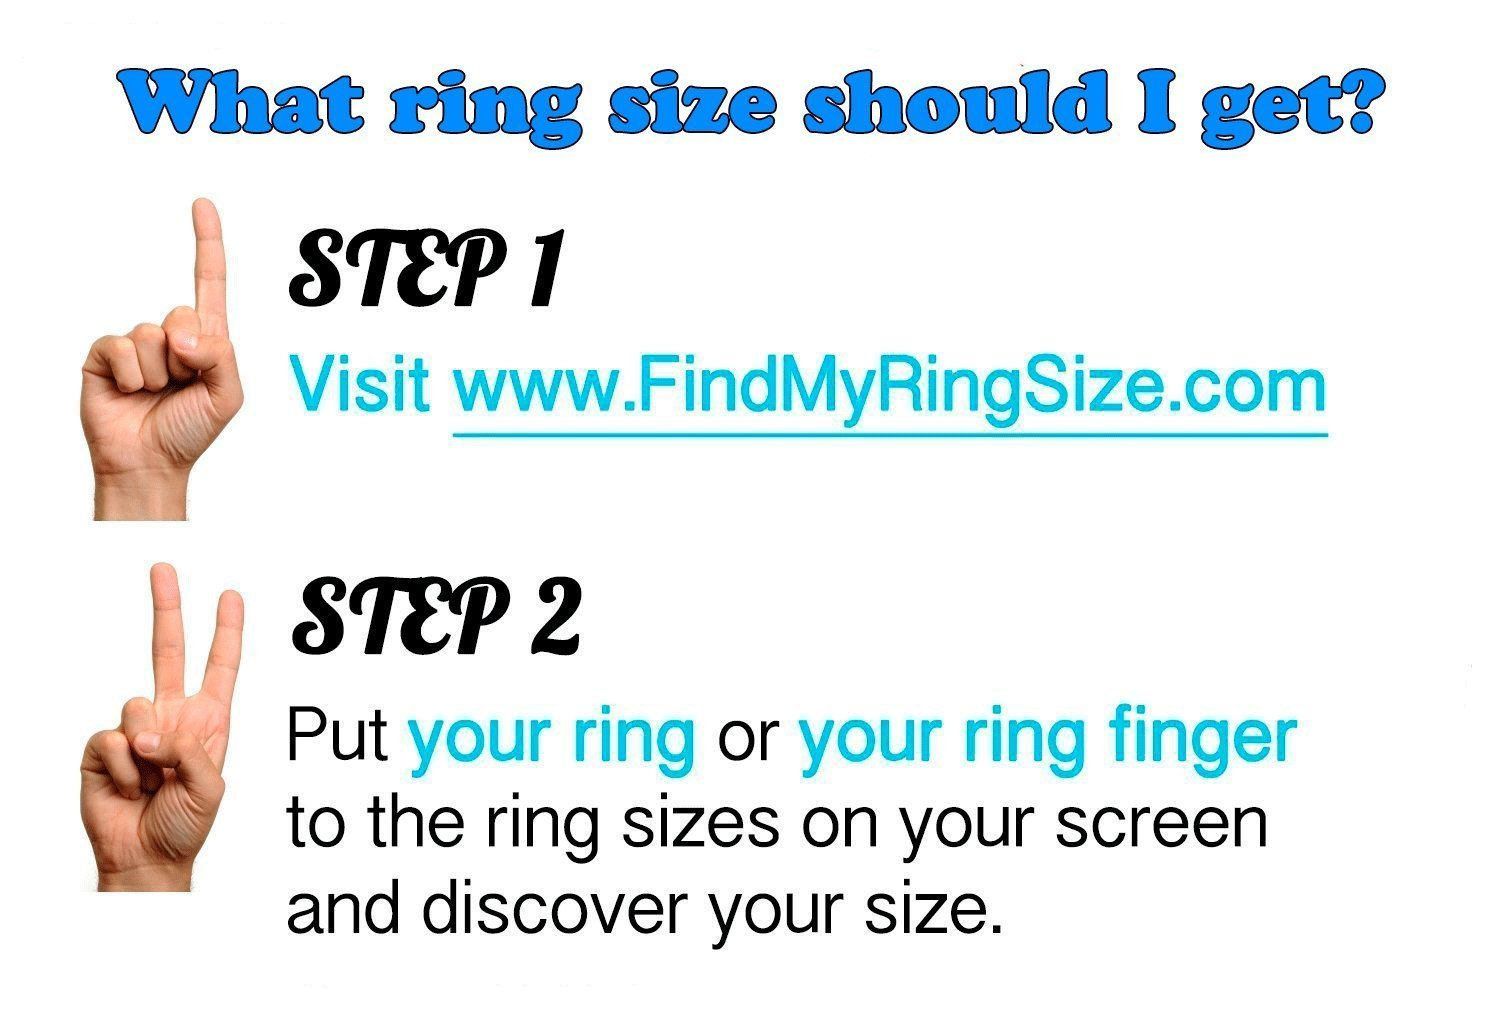 Ring sizer on screen - Amazon Com Carewares Men S And Women S Slim 5 5mm Silicone Wedding Ring And Box Thin High Quality Band For An Active Lifestyle Sports Outdoors